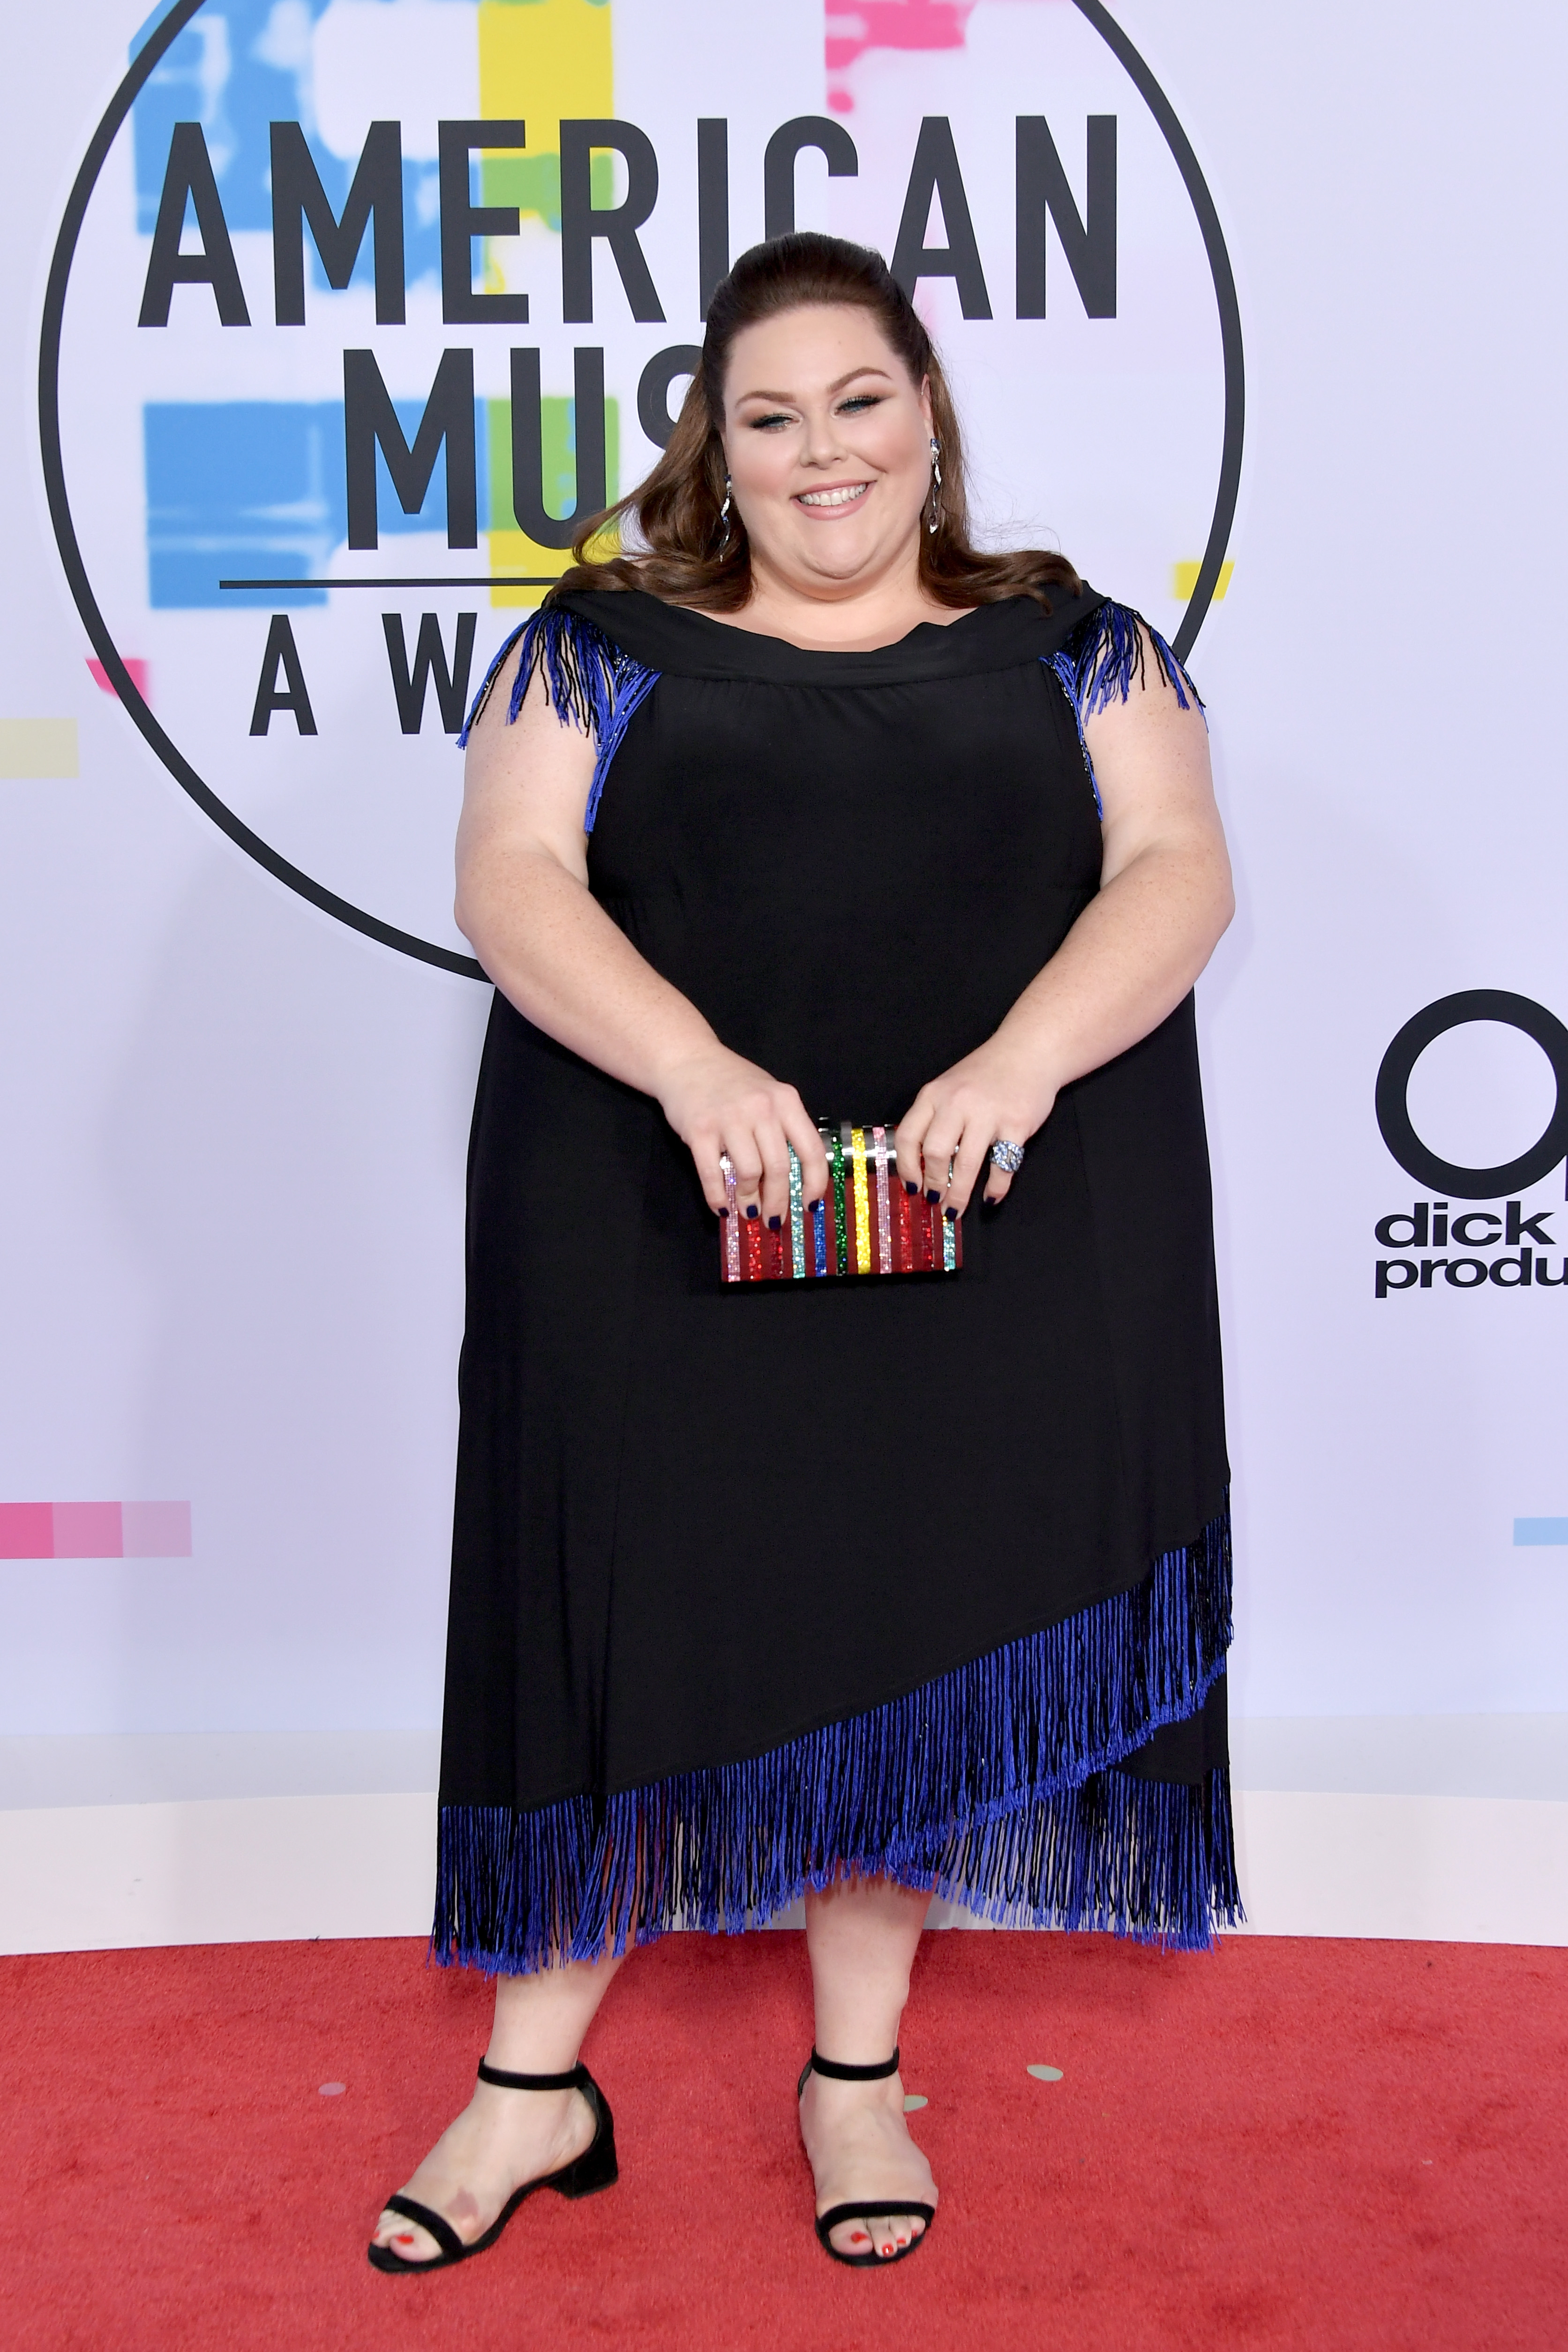 <div class='meta'><div class='origin-logo' data-origin='none'></div><span class='caption-text' data-credit='Neilson Barnard/Getty Images'>Chrissy Metz attends the 2017 American Music Awards at Microsoft Theater on November 19, 2017 in Los Angeles, California.</span></div>